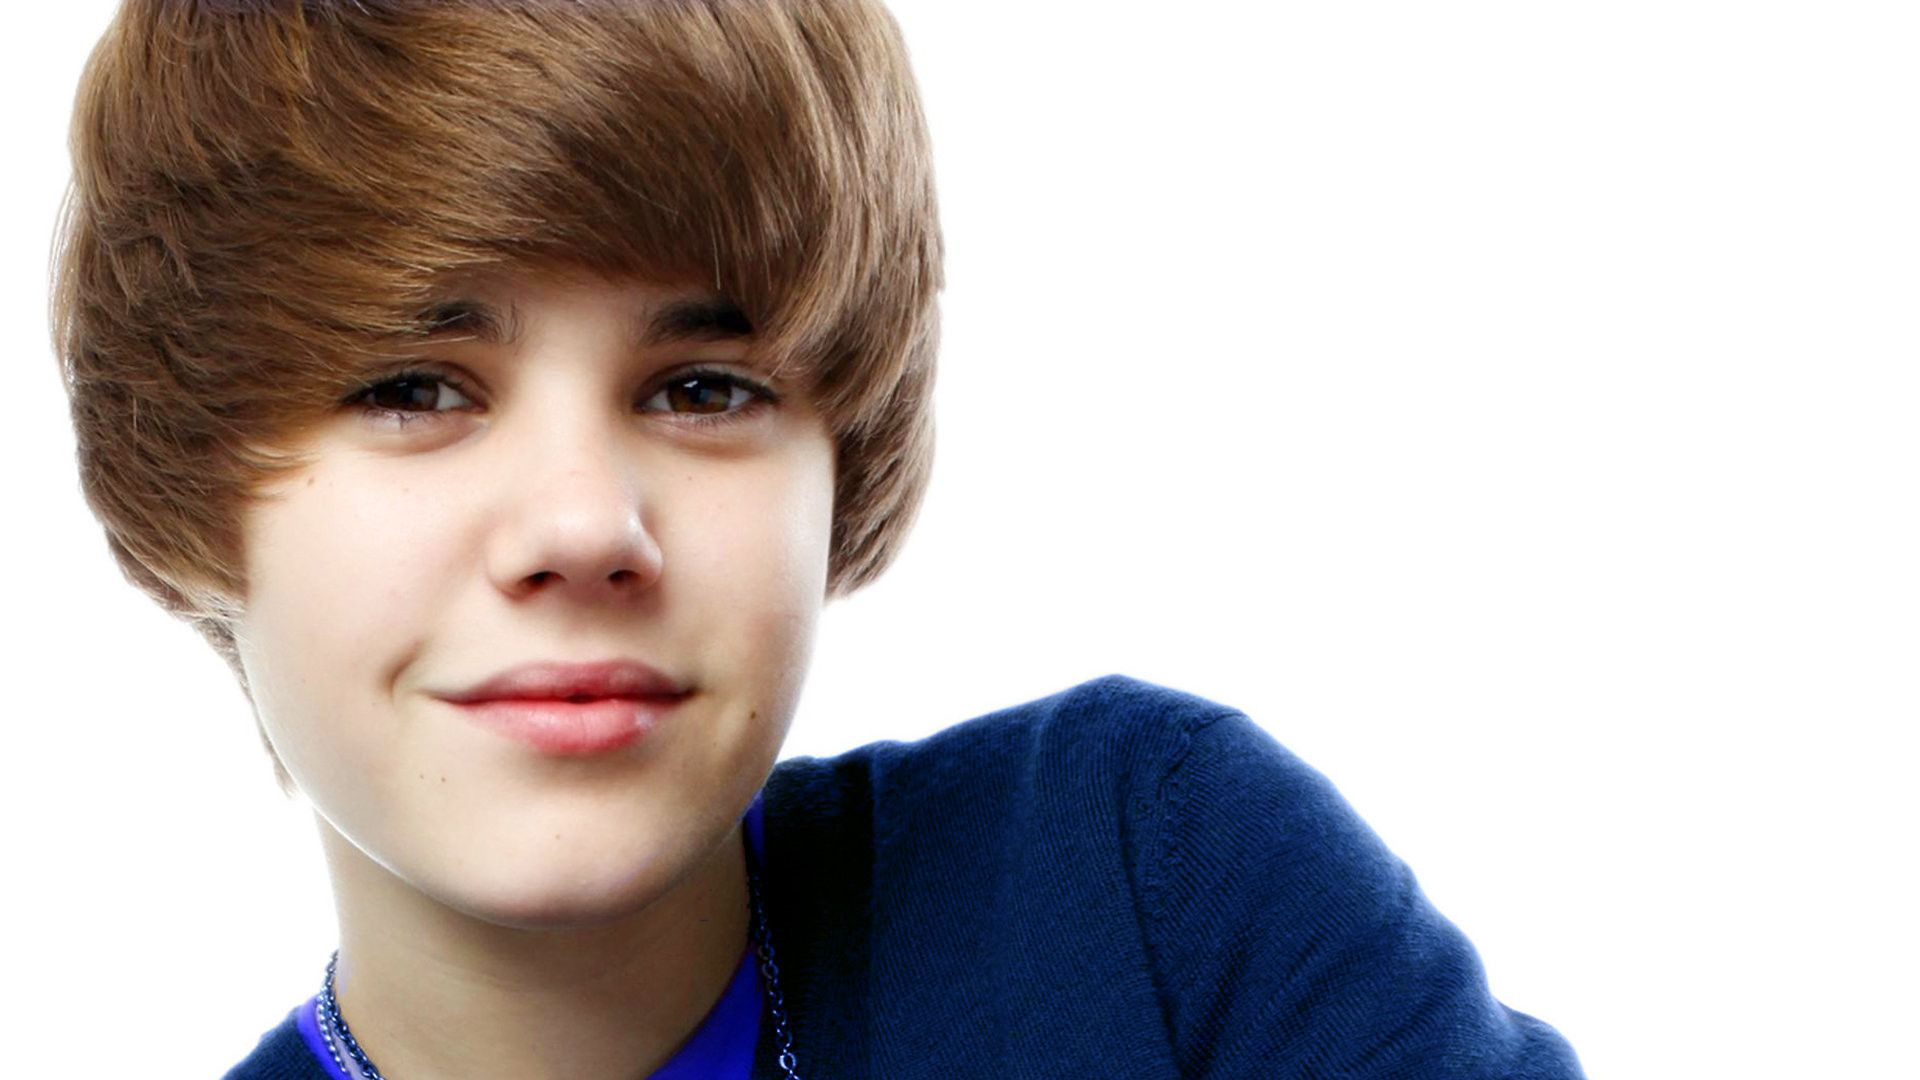 Justin Biber Photo Dwnld: Free Download Pure 100% Justin Bieber HD Wallpapers